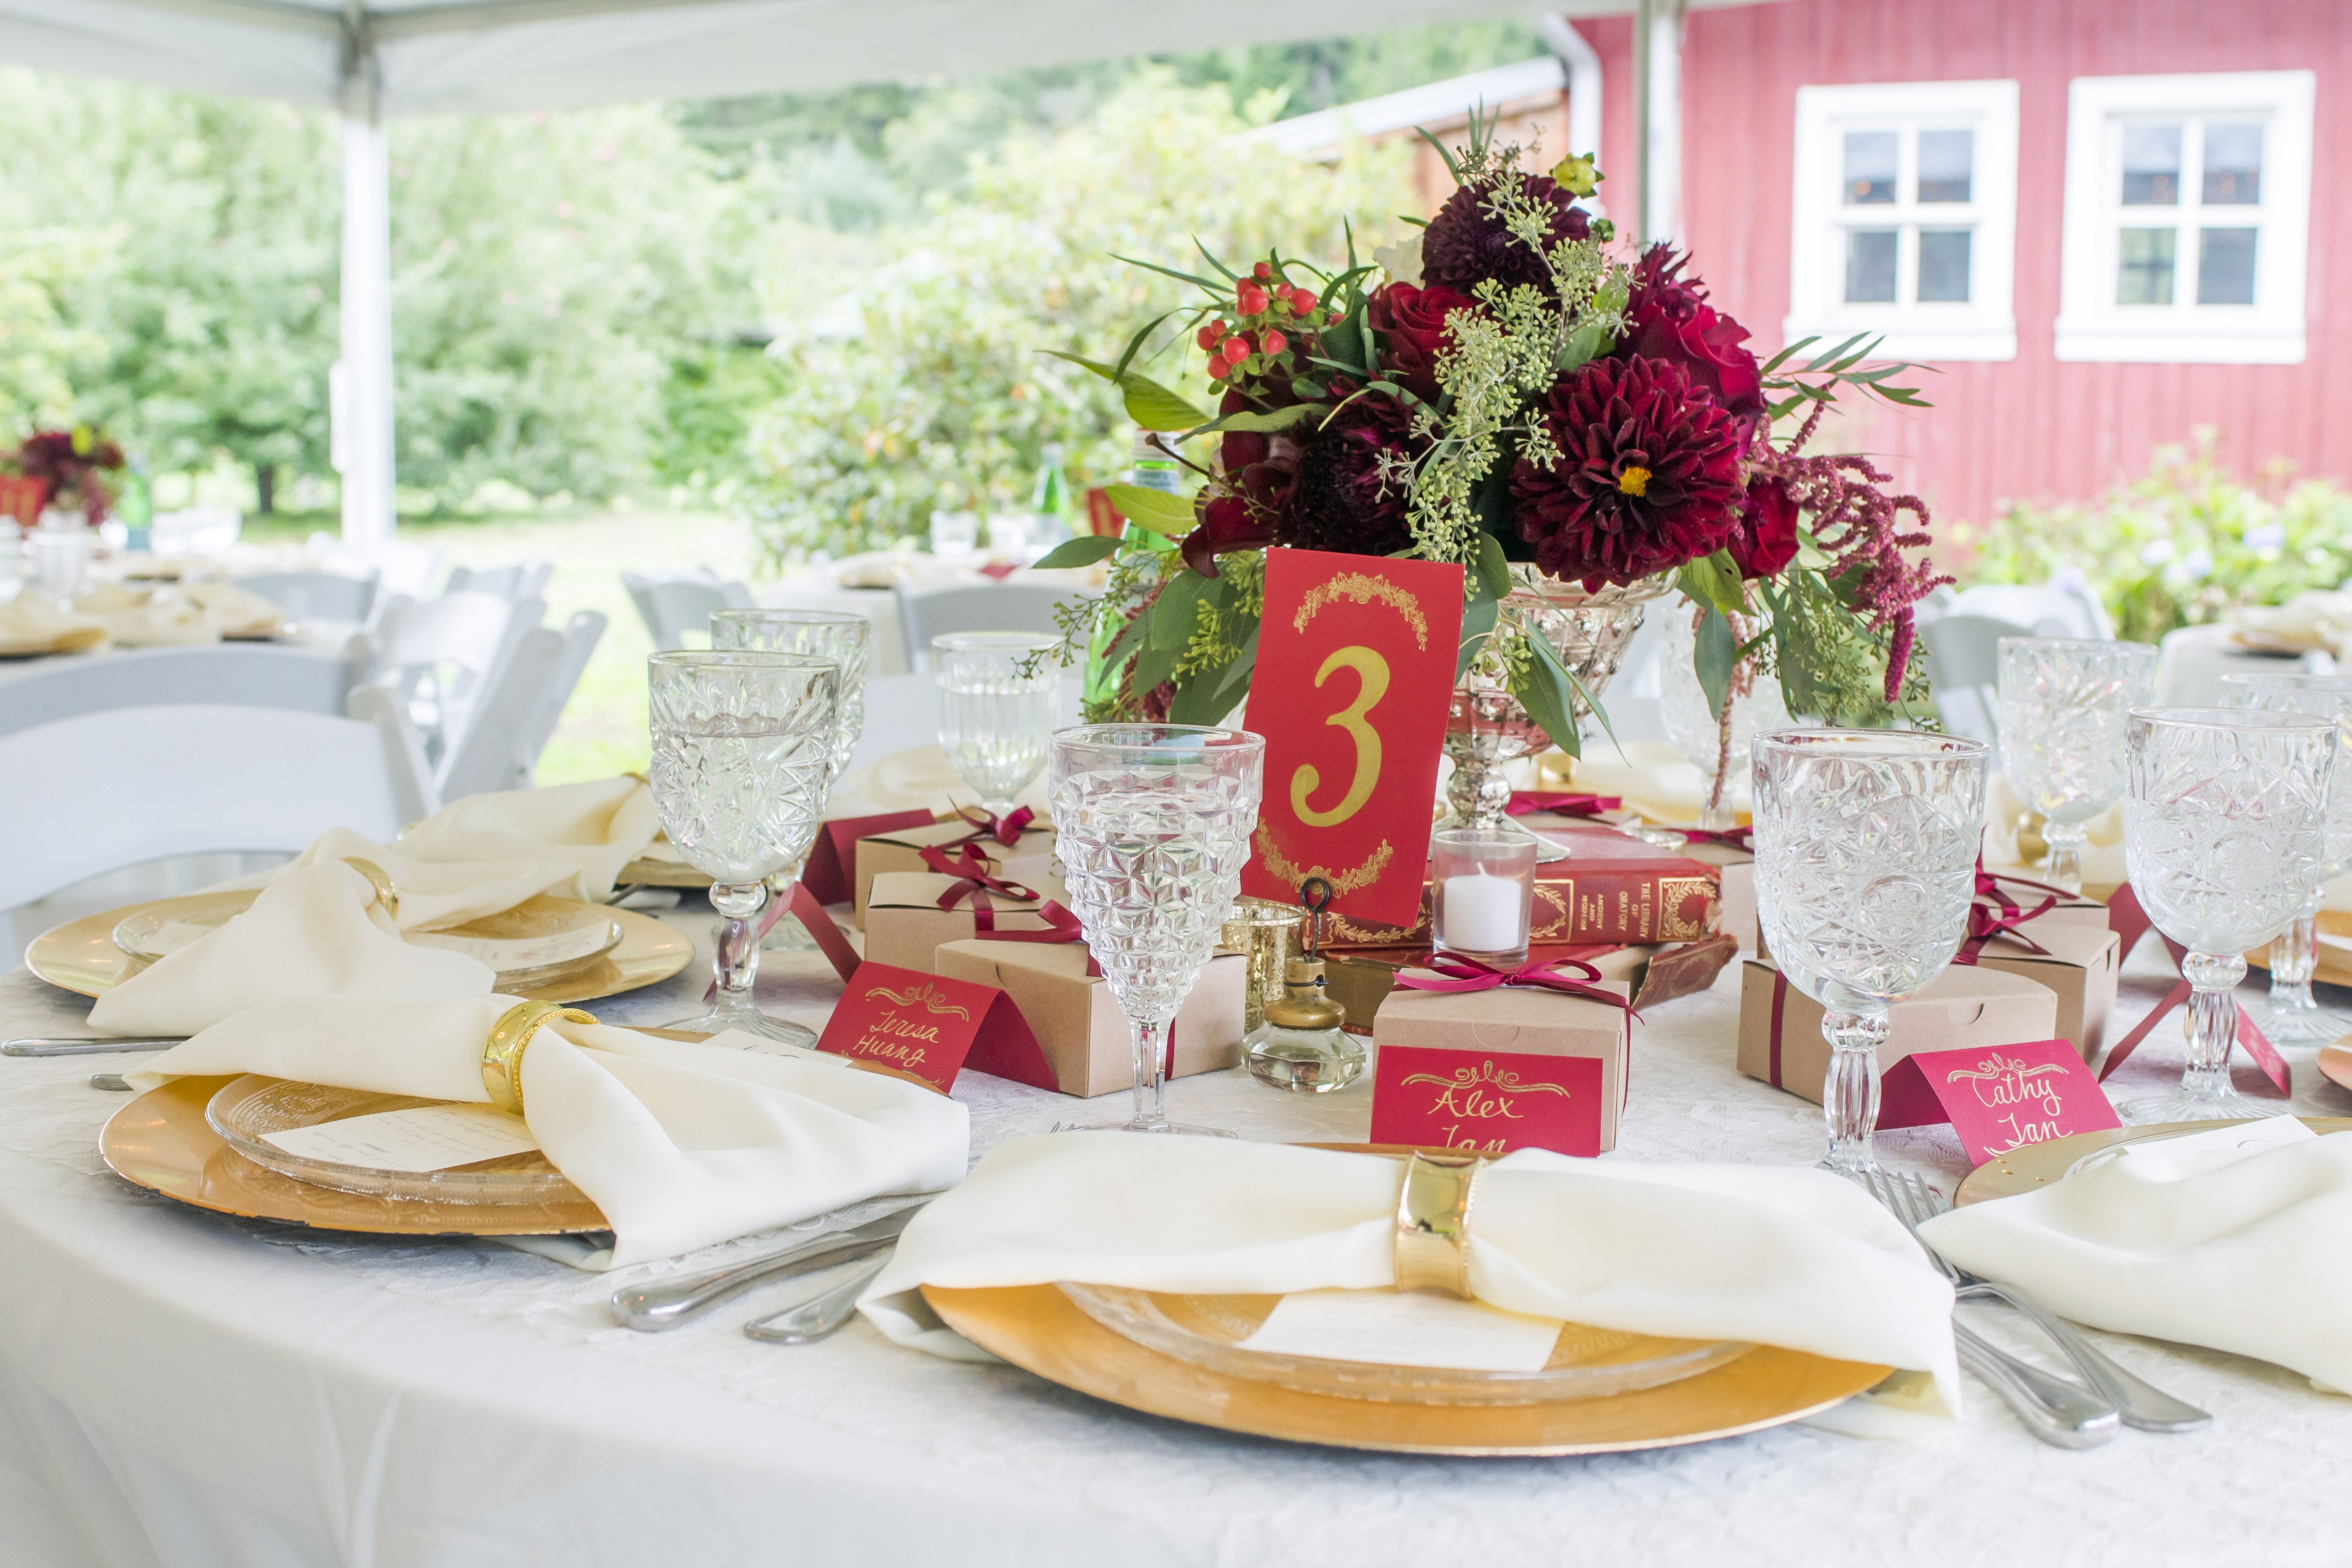 Owned Catering Company Whove Catered Thousands Of Weddings Events But They Also Offer Full Service Wedding Planning All Inclusive Packages